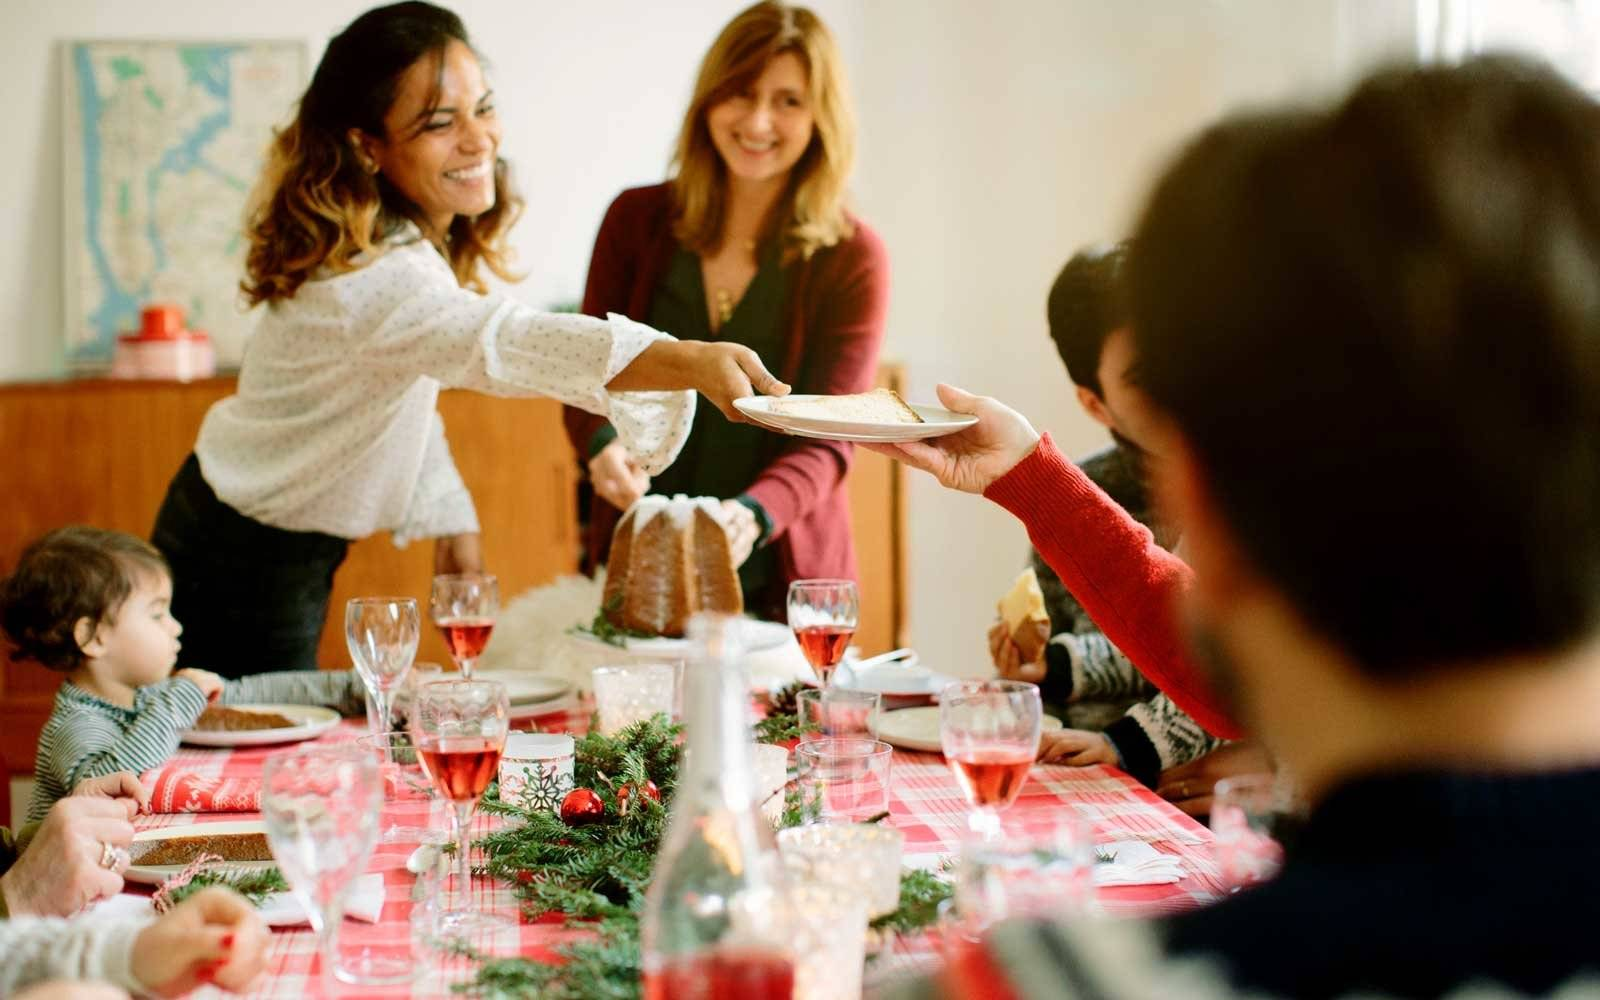 People at Table During Holiday Meal